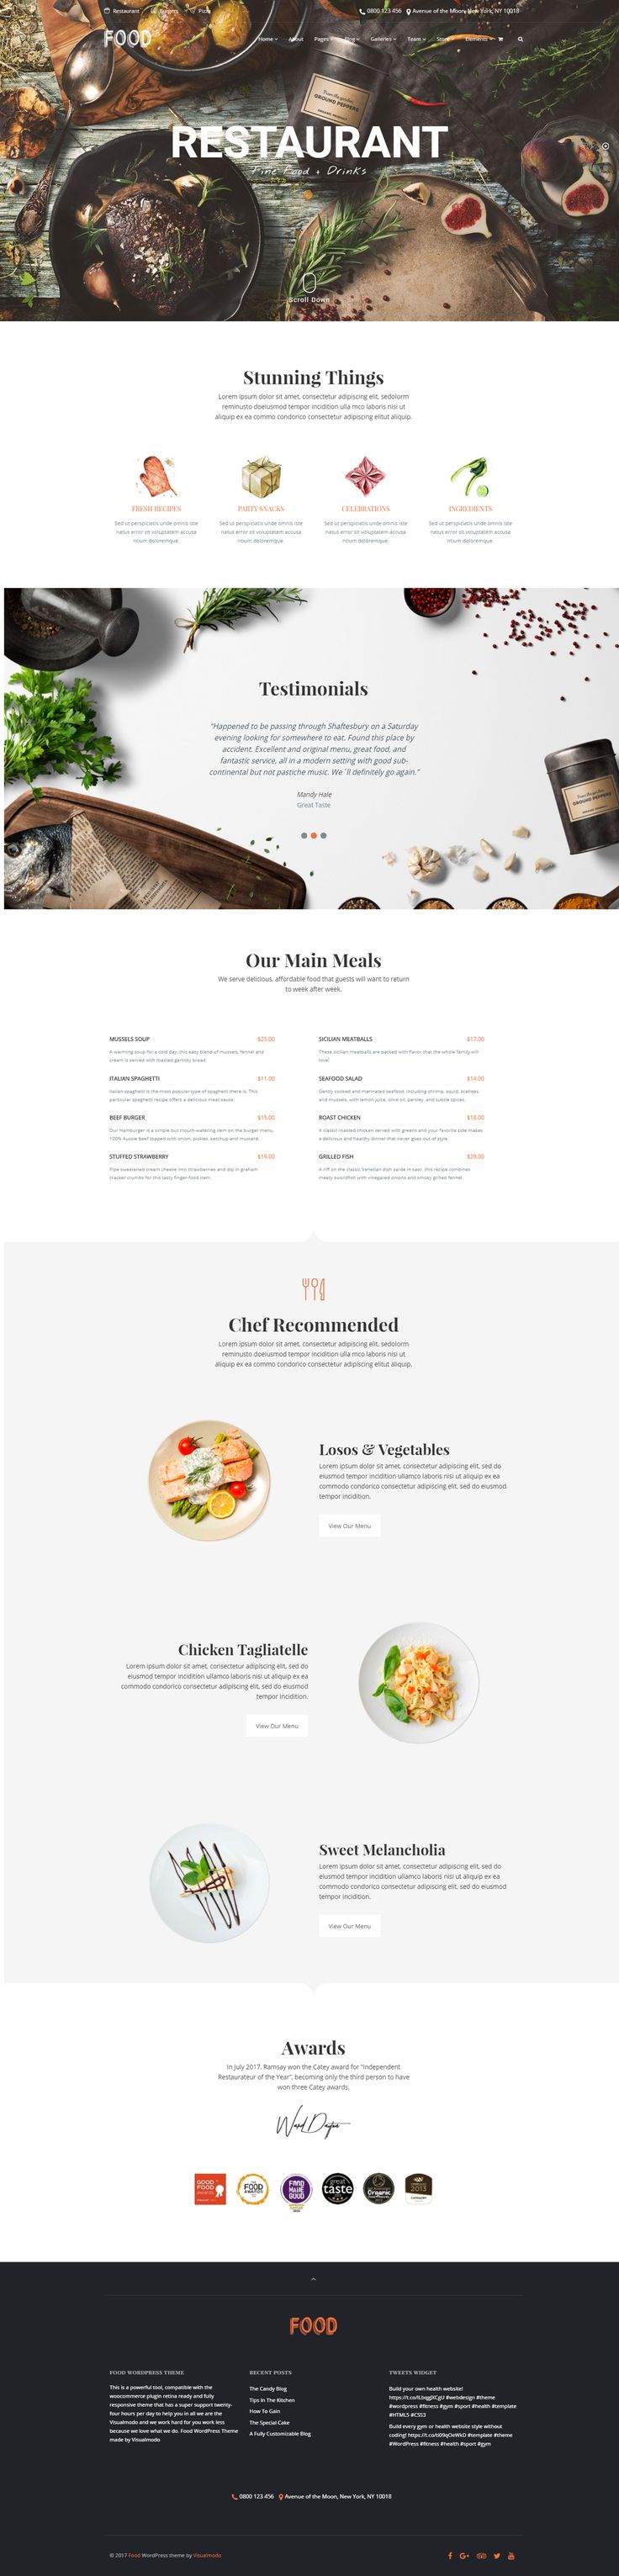 Food WordPress Theme Restaurant Pub & Bar Template Build every restaurant site design